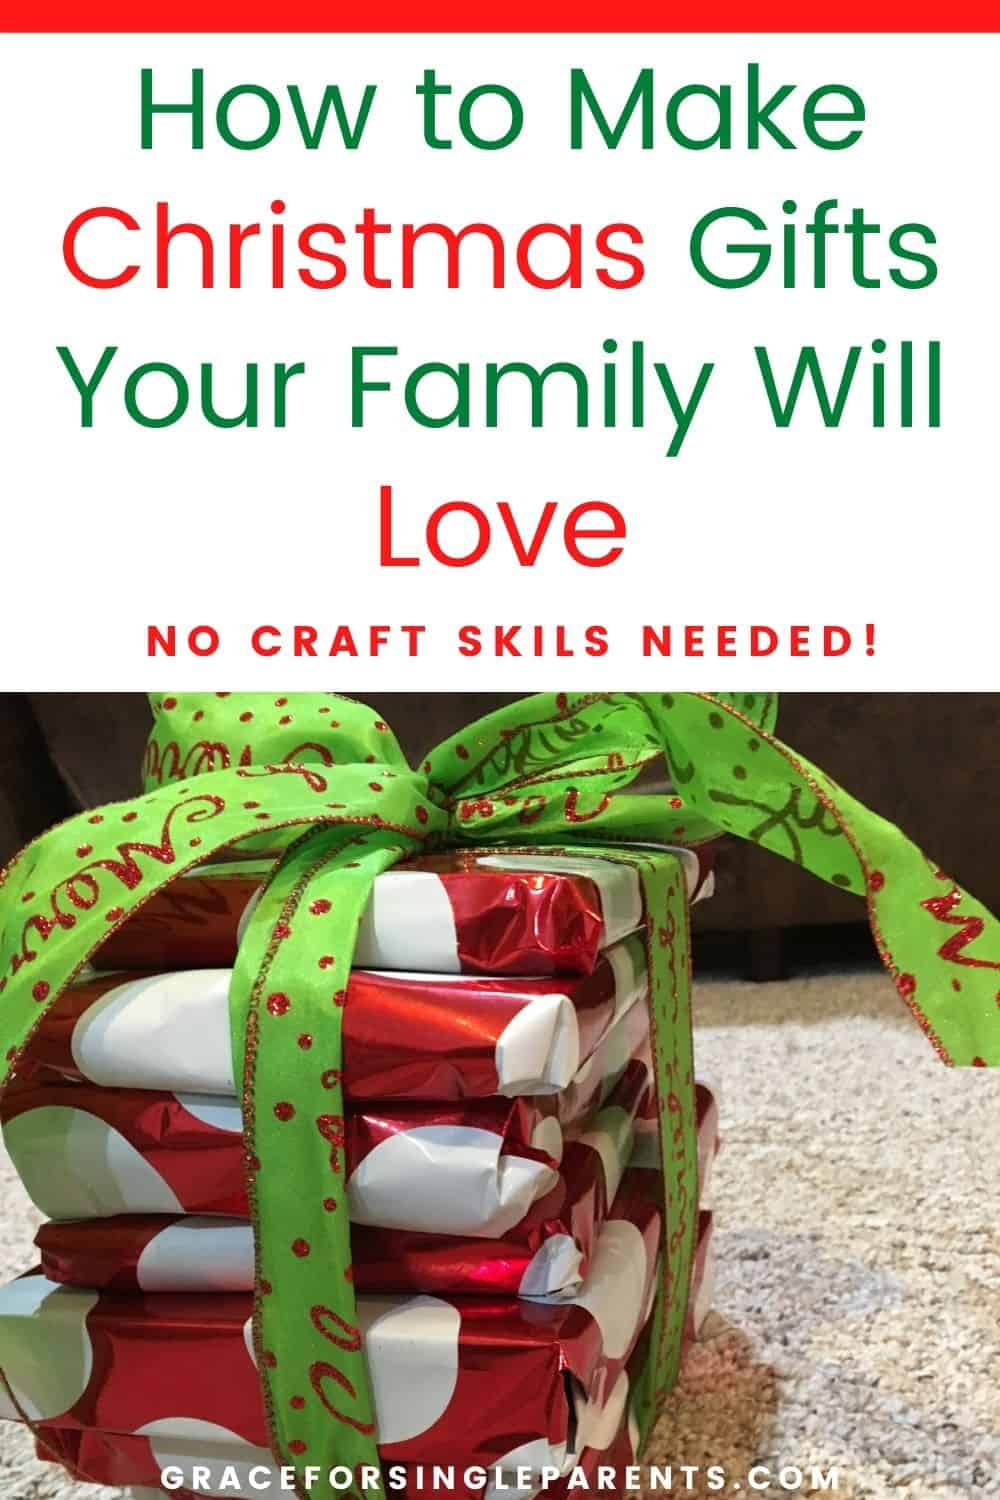 How to Make Christmas Gifts Your Family Will Love